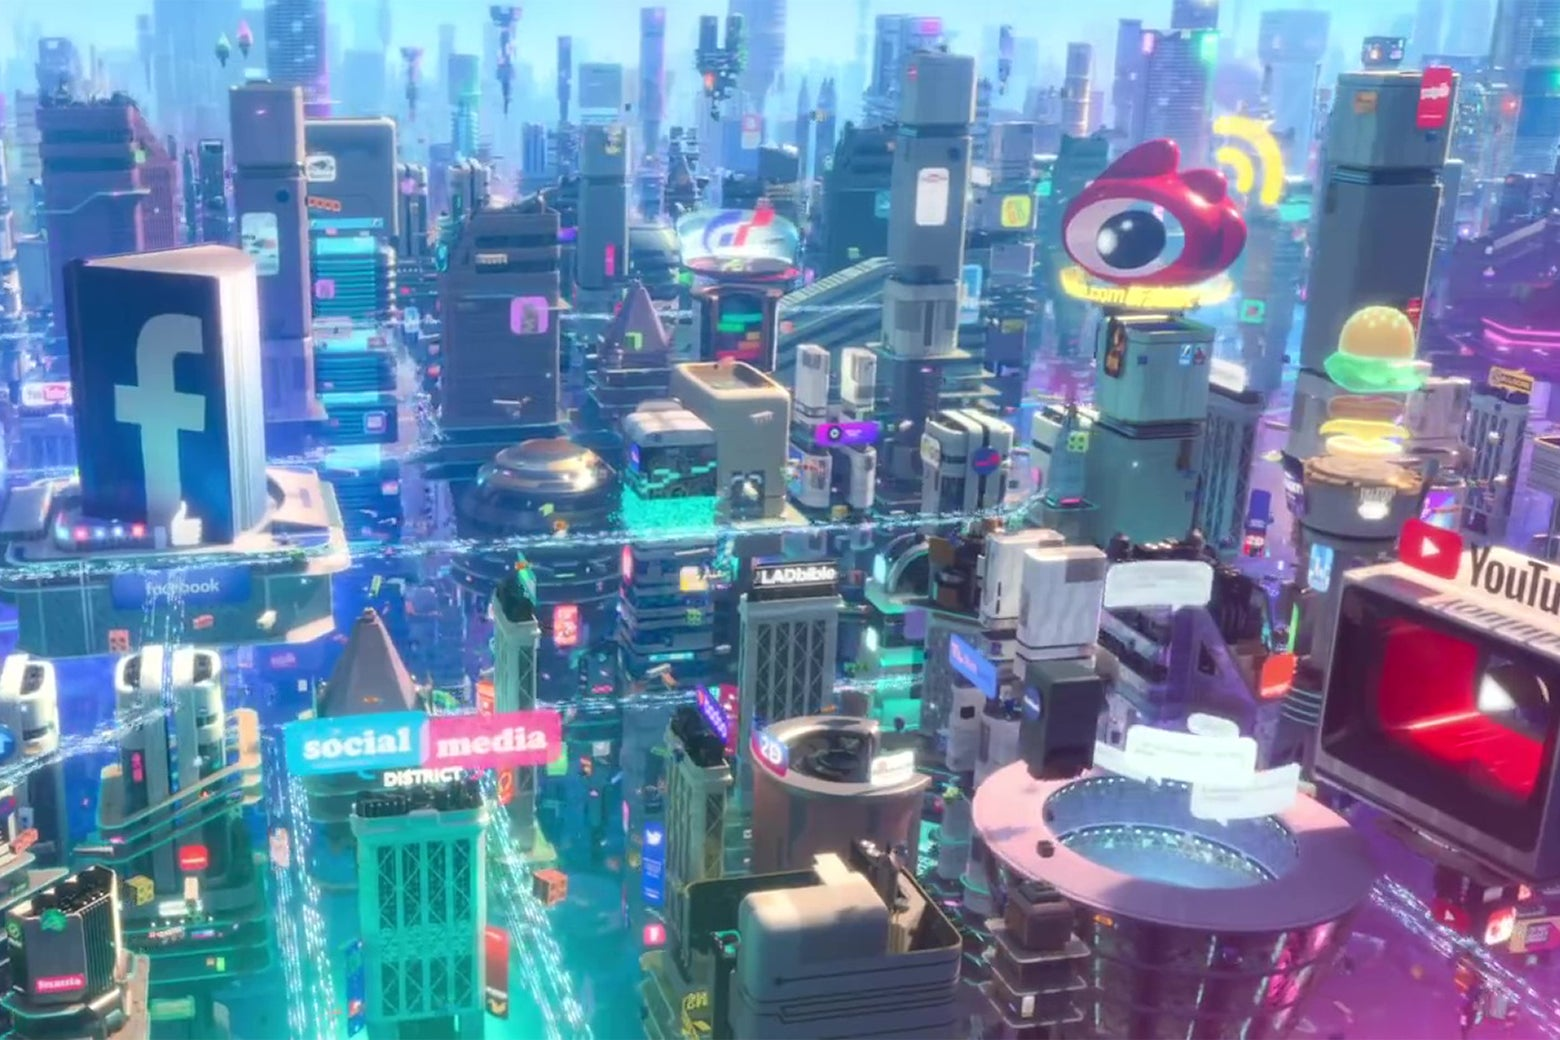 A bewildering stew of corporate logos from Wreck-It Ralph 2.